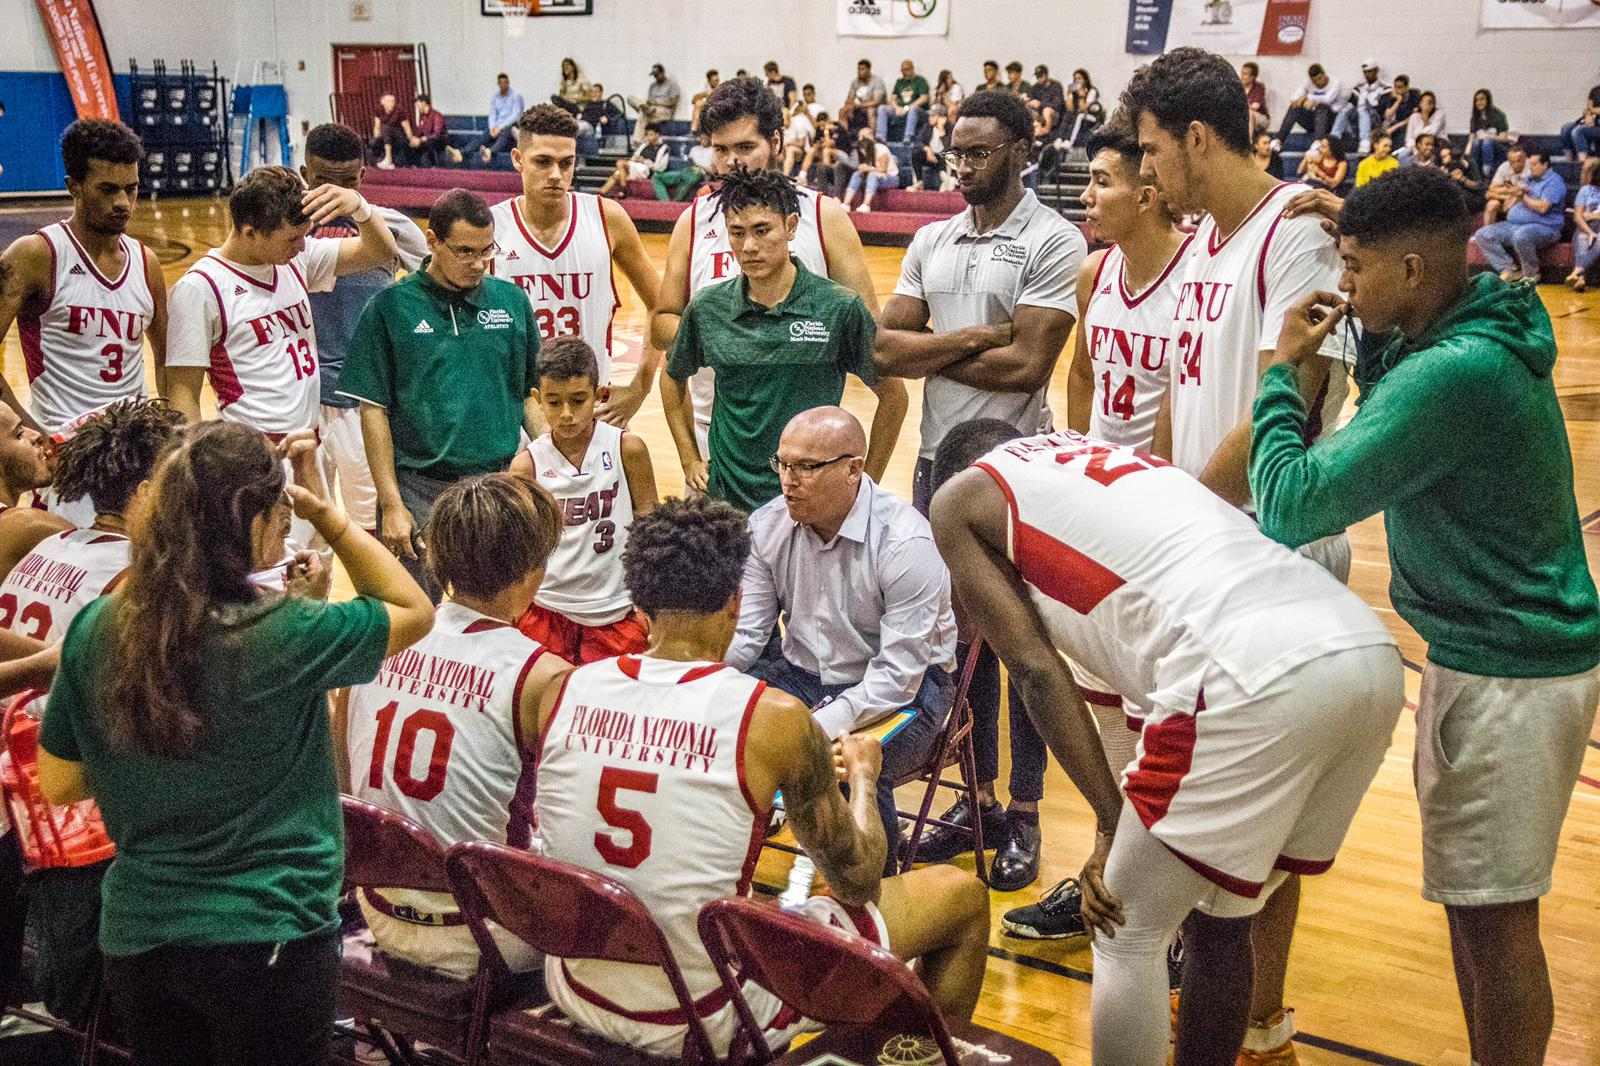 fnu men's basketball team listening to coach JJ during a time-out